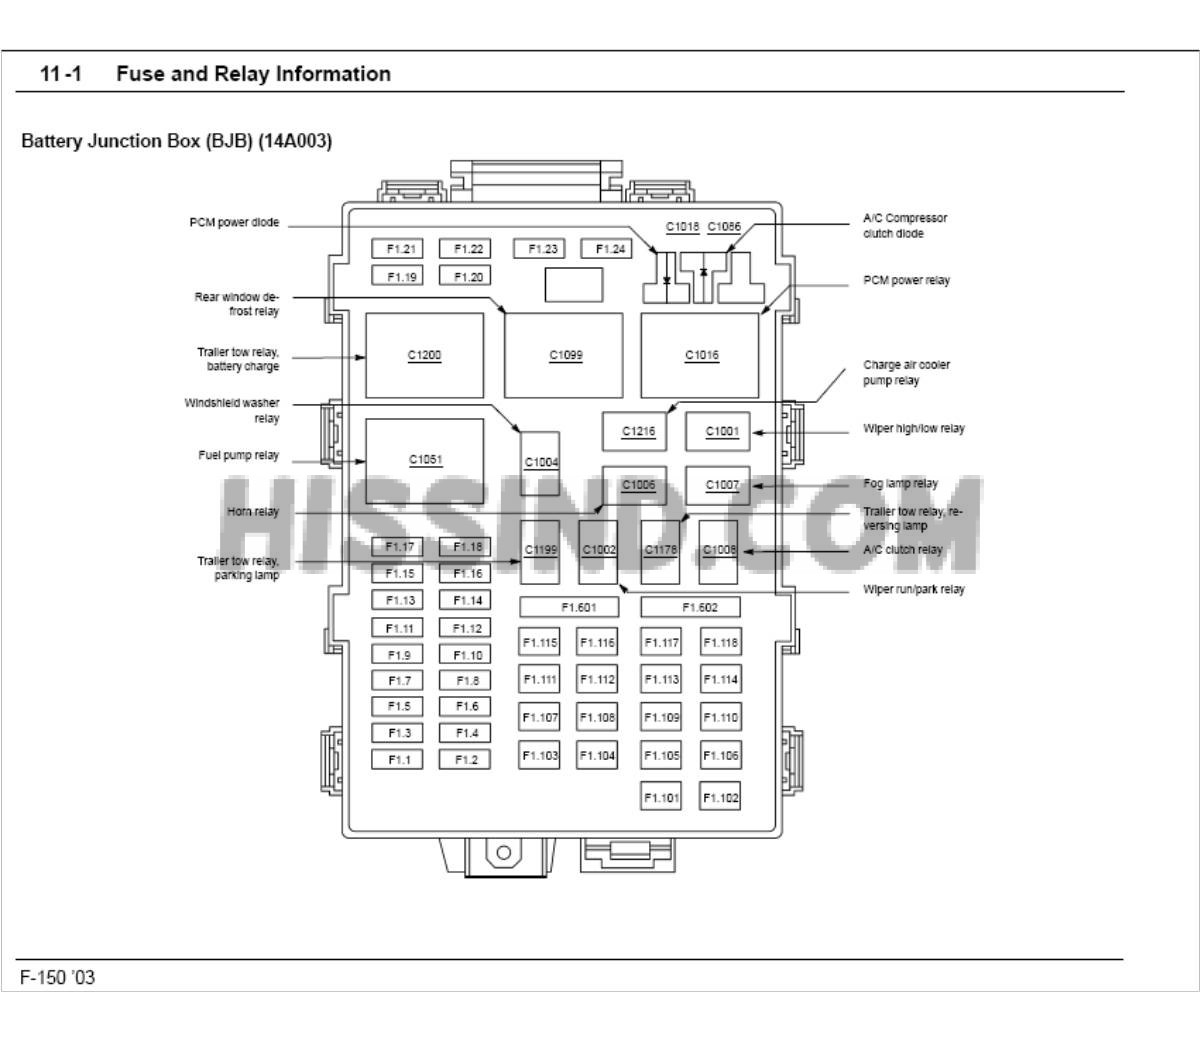 1999 ford f150 fuse block diagram auto electrical wiring diagram 1999 ford f150 fuse block diagram